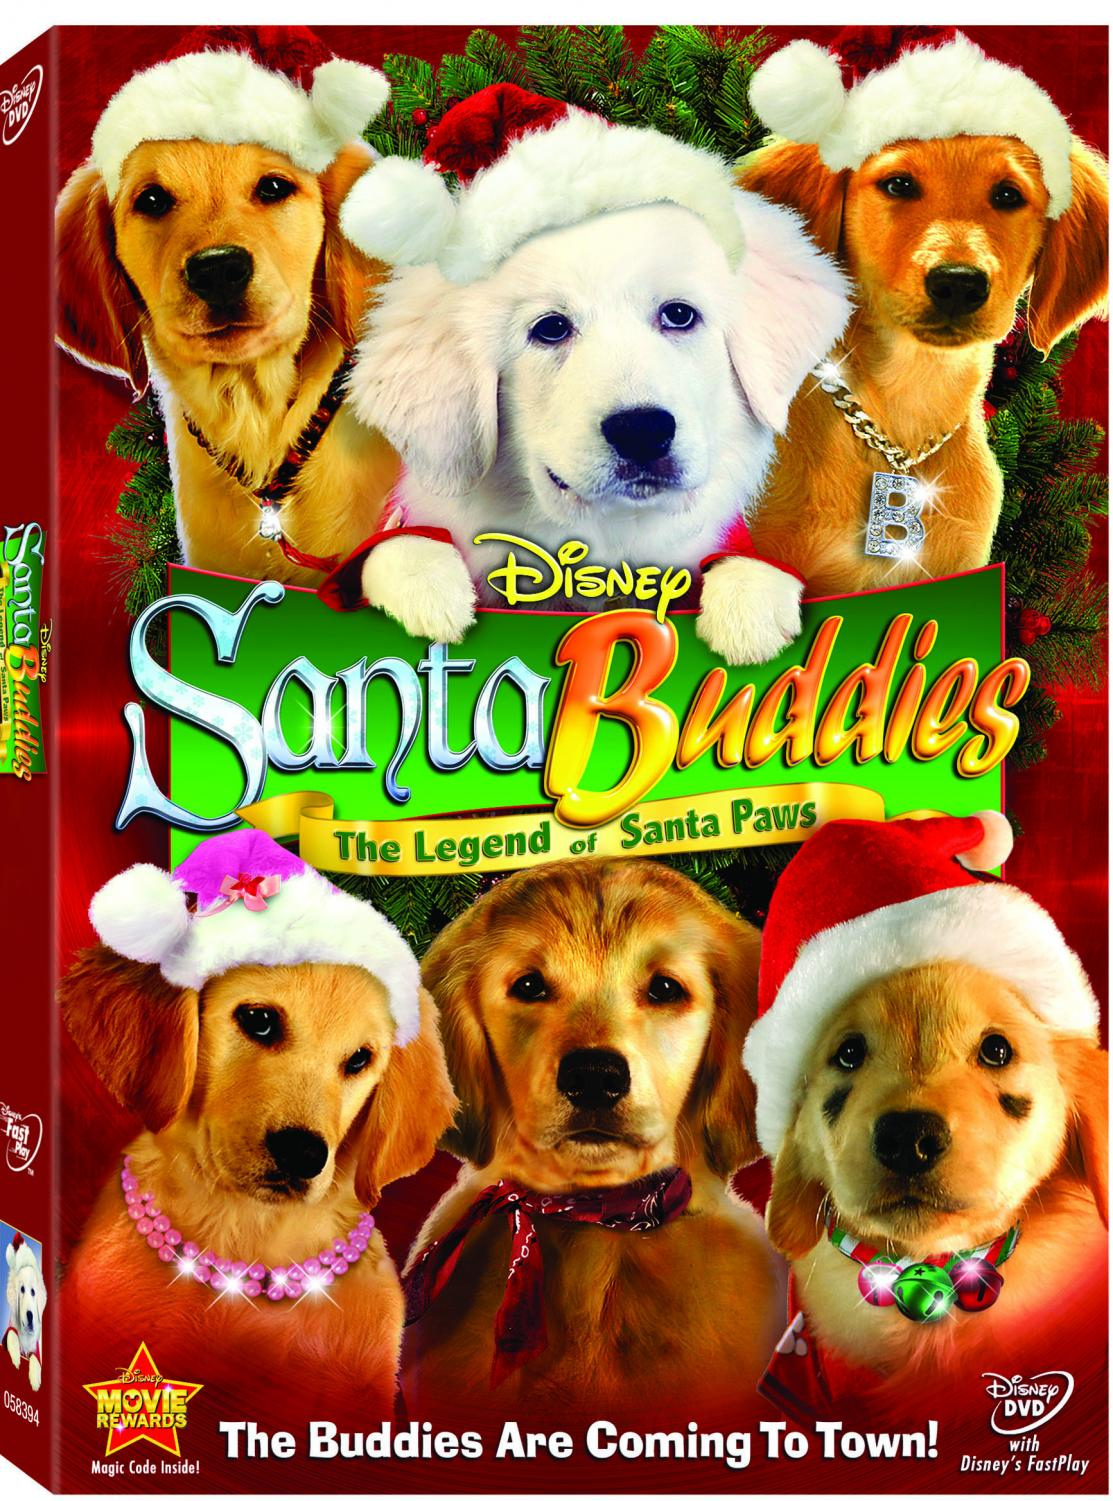 Budderball%2C+B-Dawg%2C+Rosebud%2C+Buddha%2C+and+Mudbud+return+for+this+fantastic+festive+journey+to+the+magical+world+of+the+North+Pole.+When+Puppy+Paws%2C+the+feisty+son+of+Santa+Paws%2C+forgets+the+true+meaning+of+the+season%2C+the+Buddies+must+remind+him+that+Christmas+is+not+about+what+you+get%3B+it%27s+about+what+you+give.